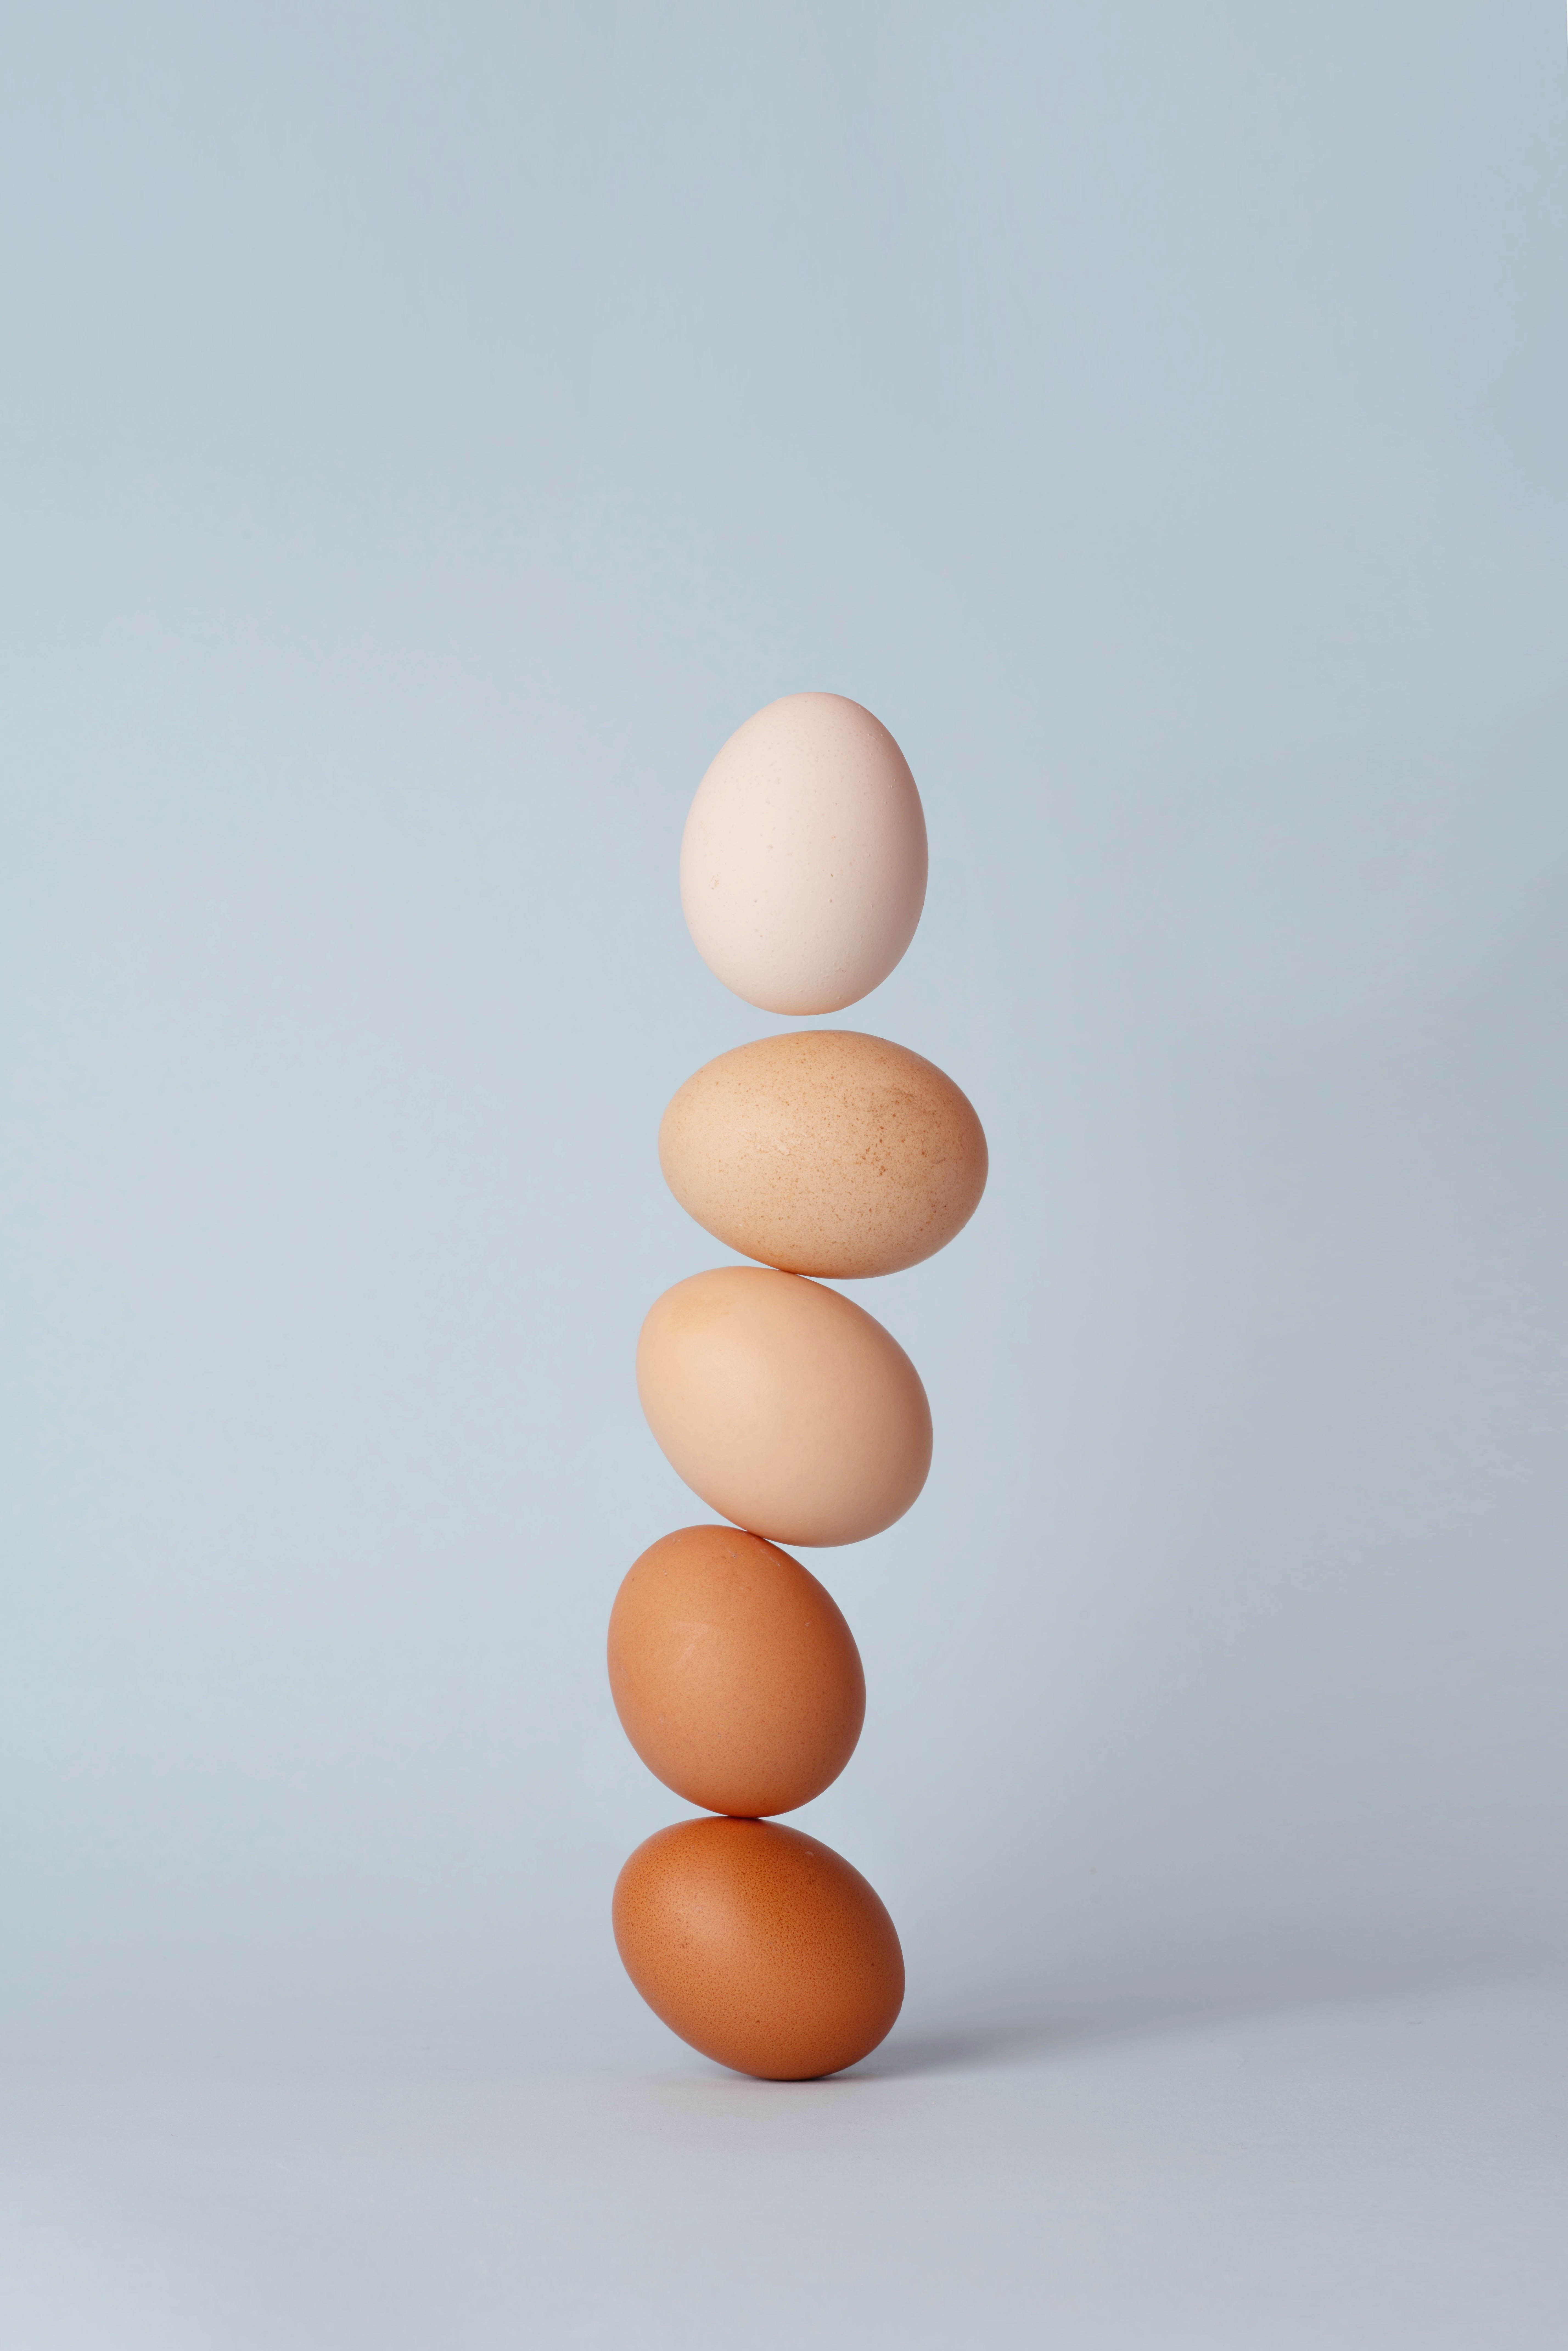 Eggs falling to the ground | Unsplash.com